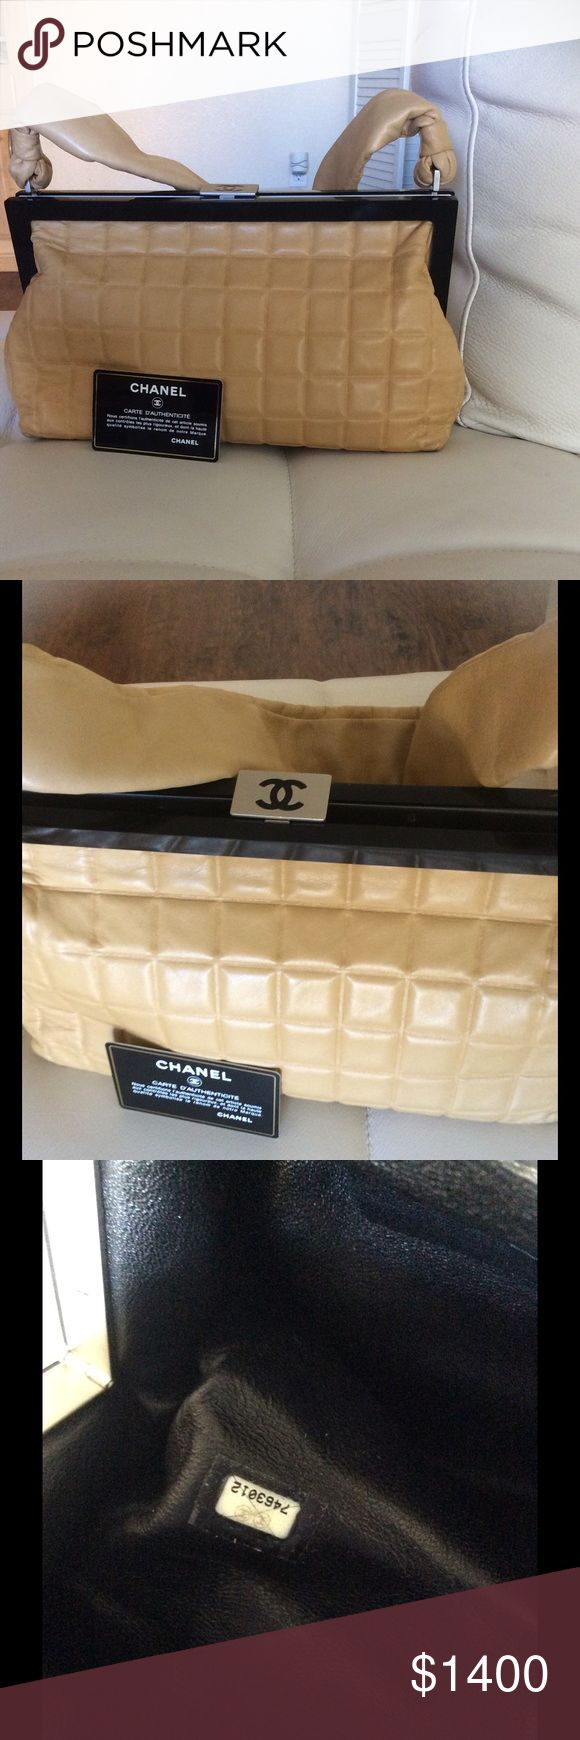 Chanel lamb skin nude satchel No stain , clean inside black leather , clean outside nude leather , vintage , Chanel authentic piece, trade with Chanel CHANEL Bags Shoulder Bags